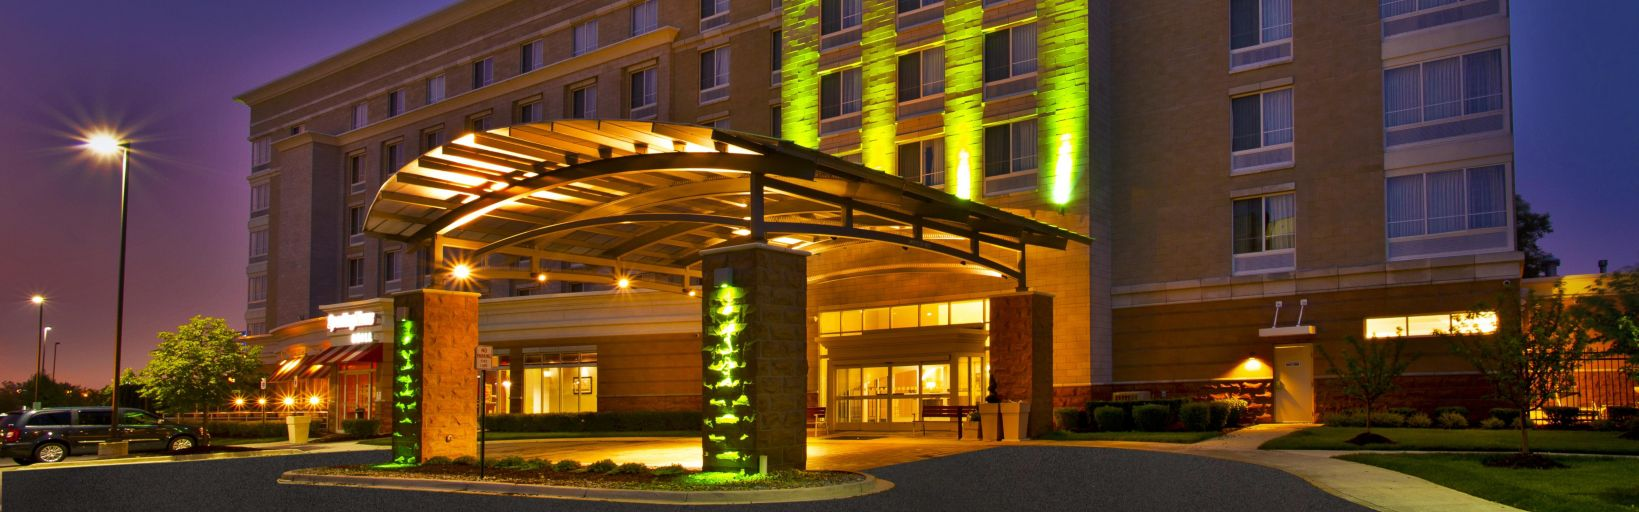 Metro Airport Hotel Exterior At Night